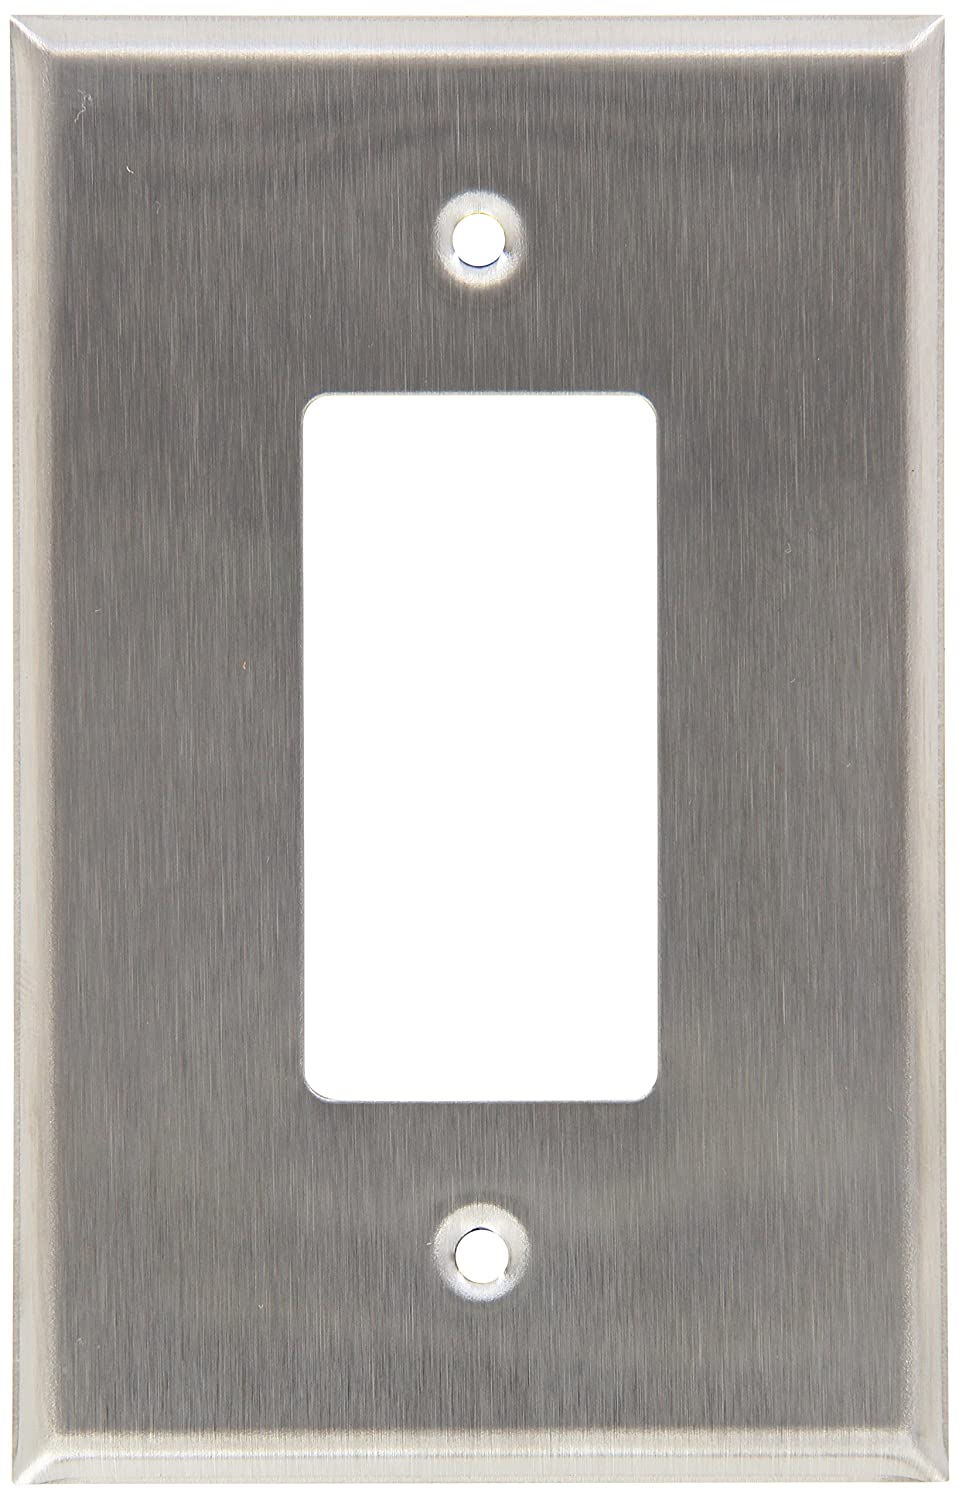 Morris 83740 430 Wall Plate, Oversize Decorative/GFCI, 1 Gang, Stainless Steel Morris Products